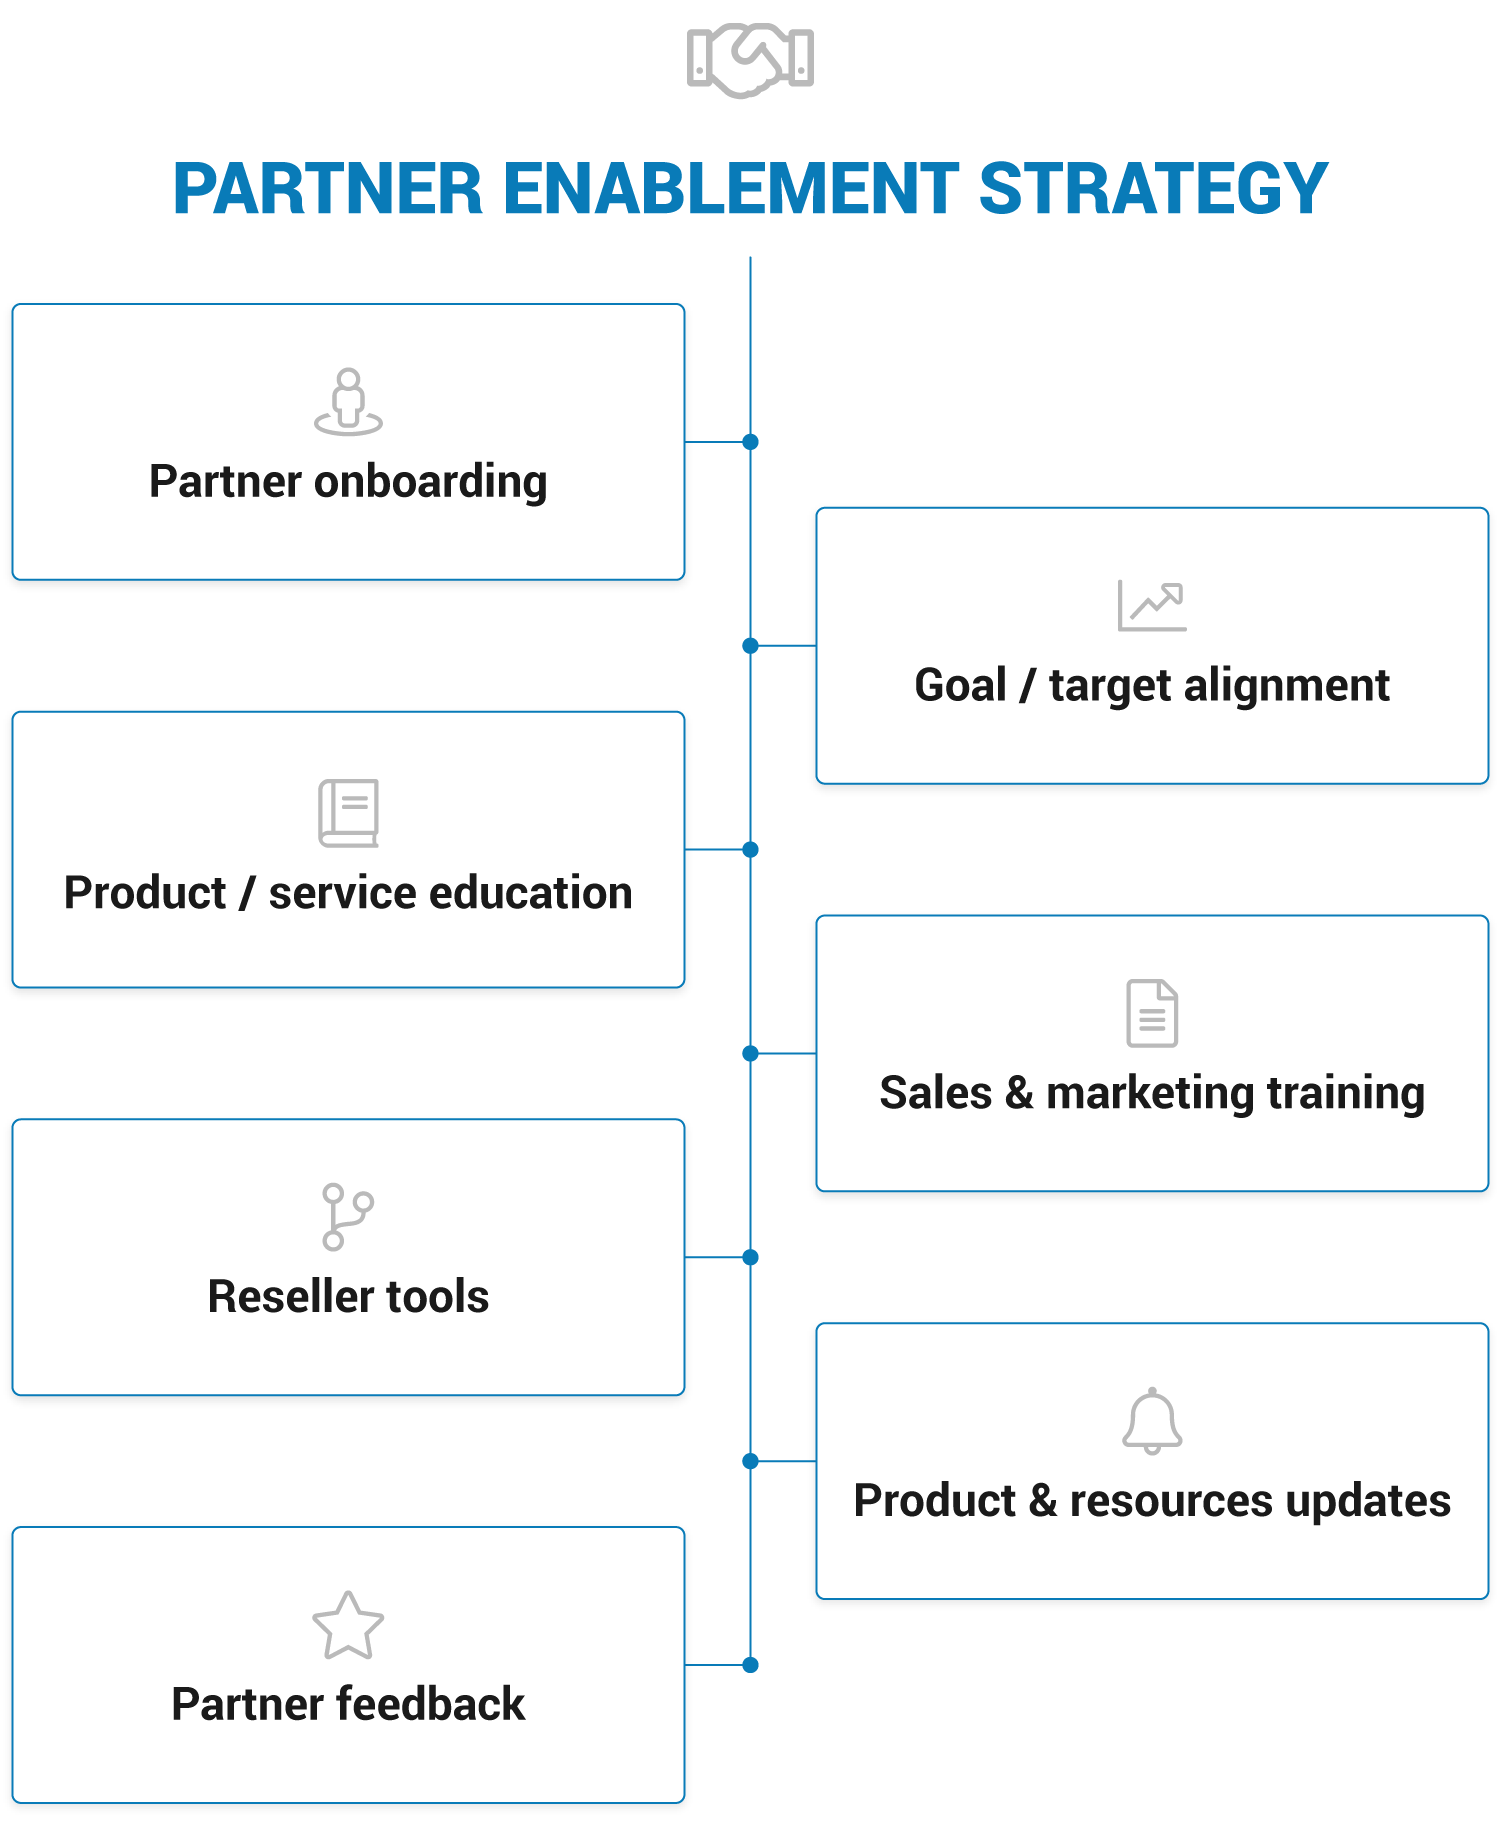 Partner enablement strategy